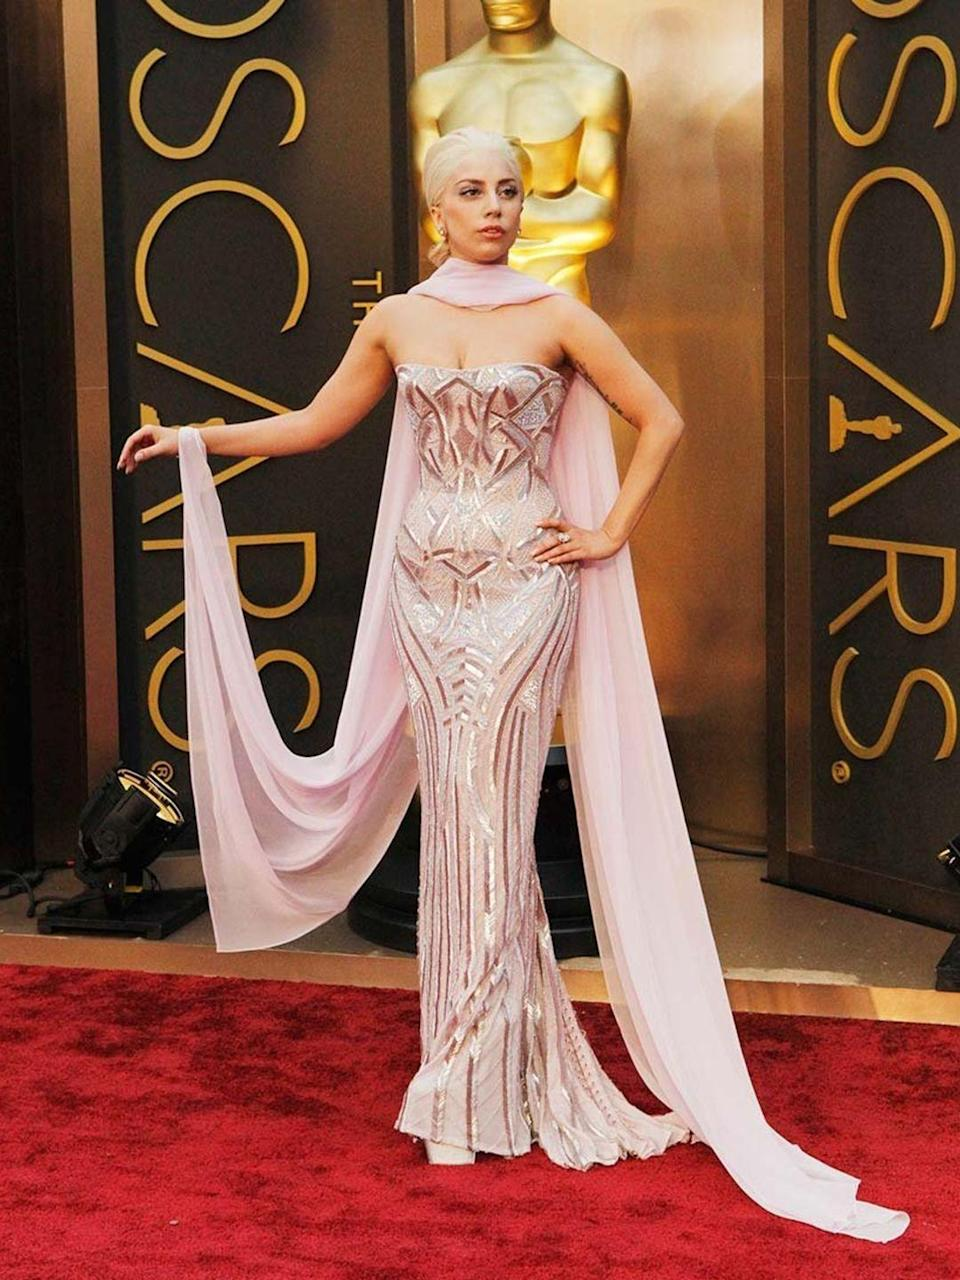 <p>Lady Gaga wearing Atelier Versace s/s 2014 Couture collection to the Oscars 2014</p>